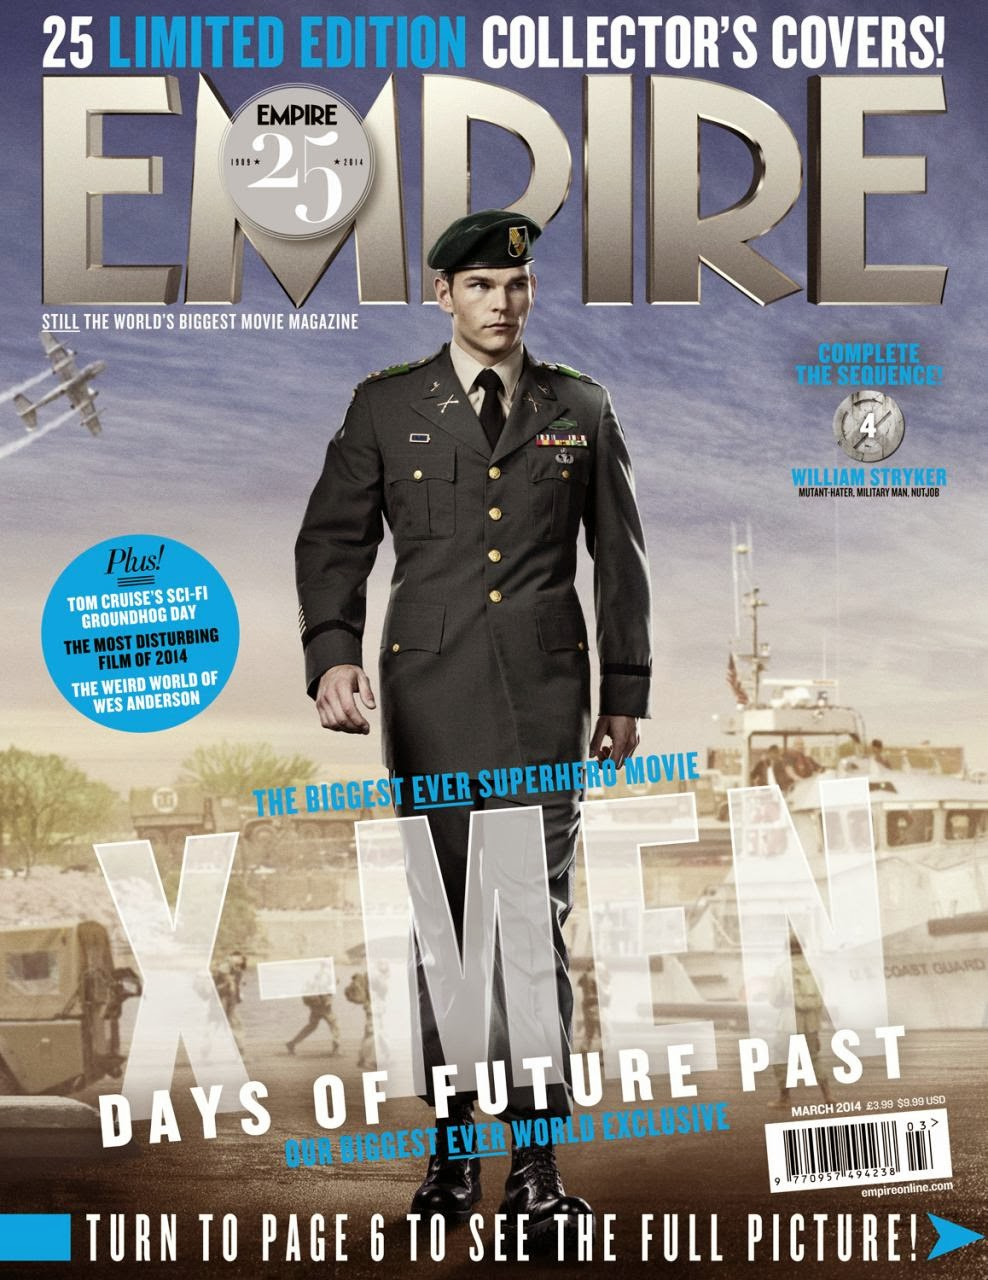 X-MEN DAYS OF FUTURE PAST-Official Poster Banner PROMO EMPIRE COVER-28JANEIRO2014-15